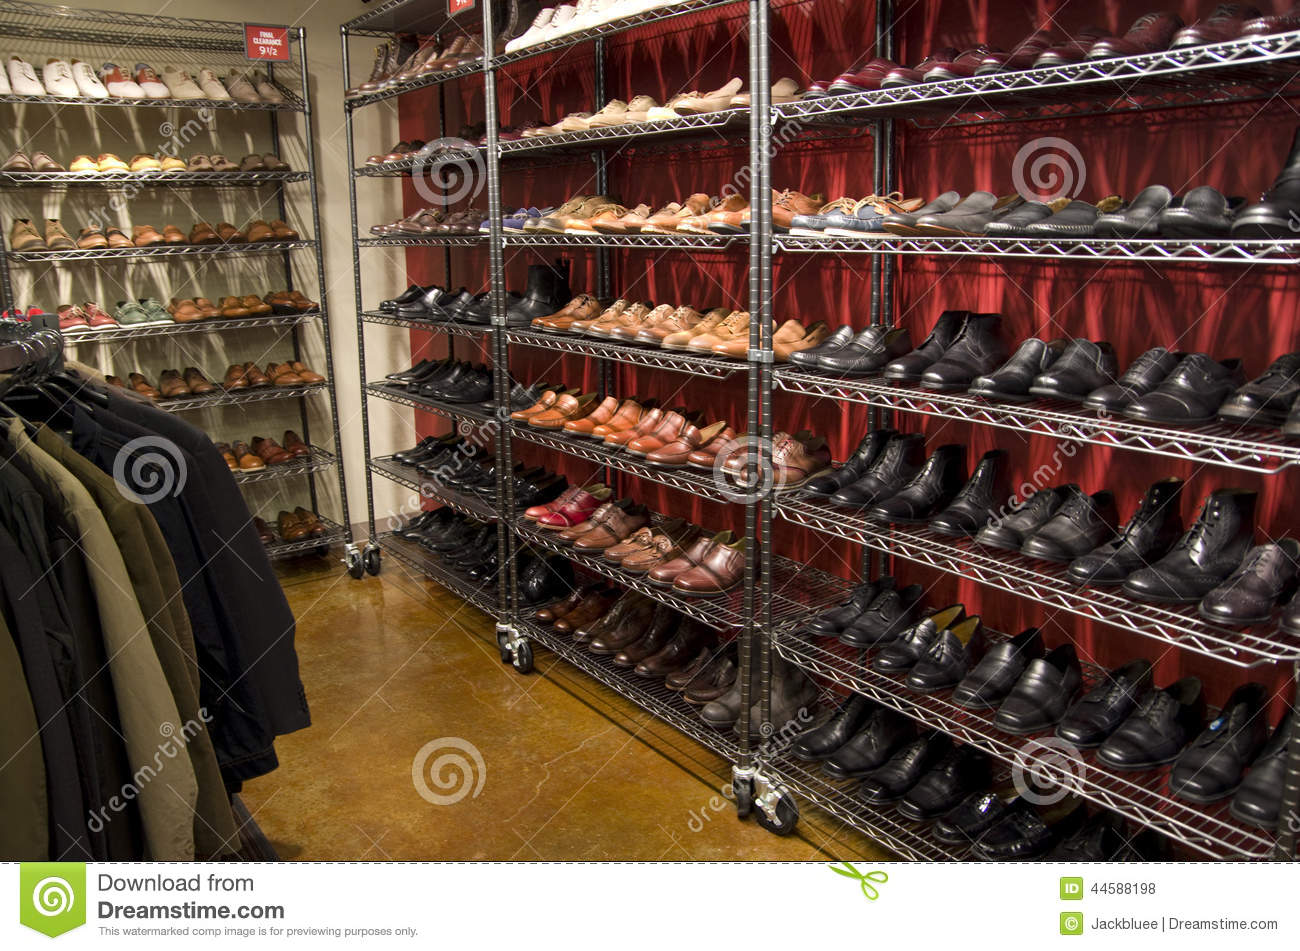 Nice clothing stores for men